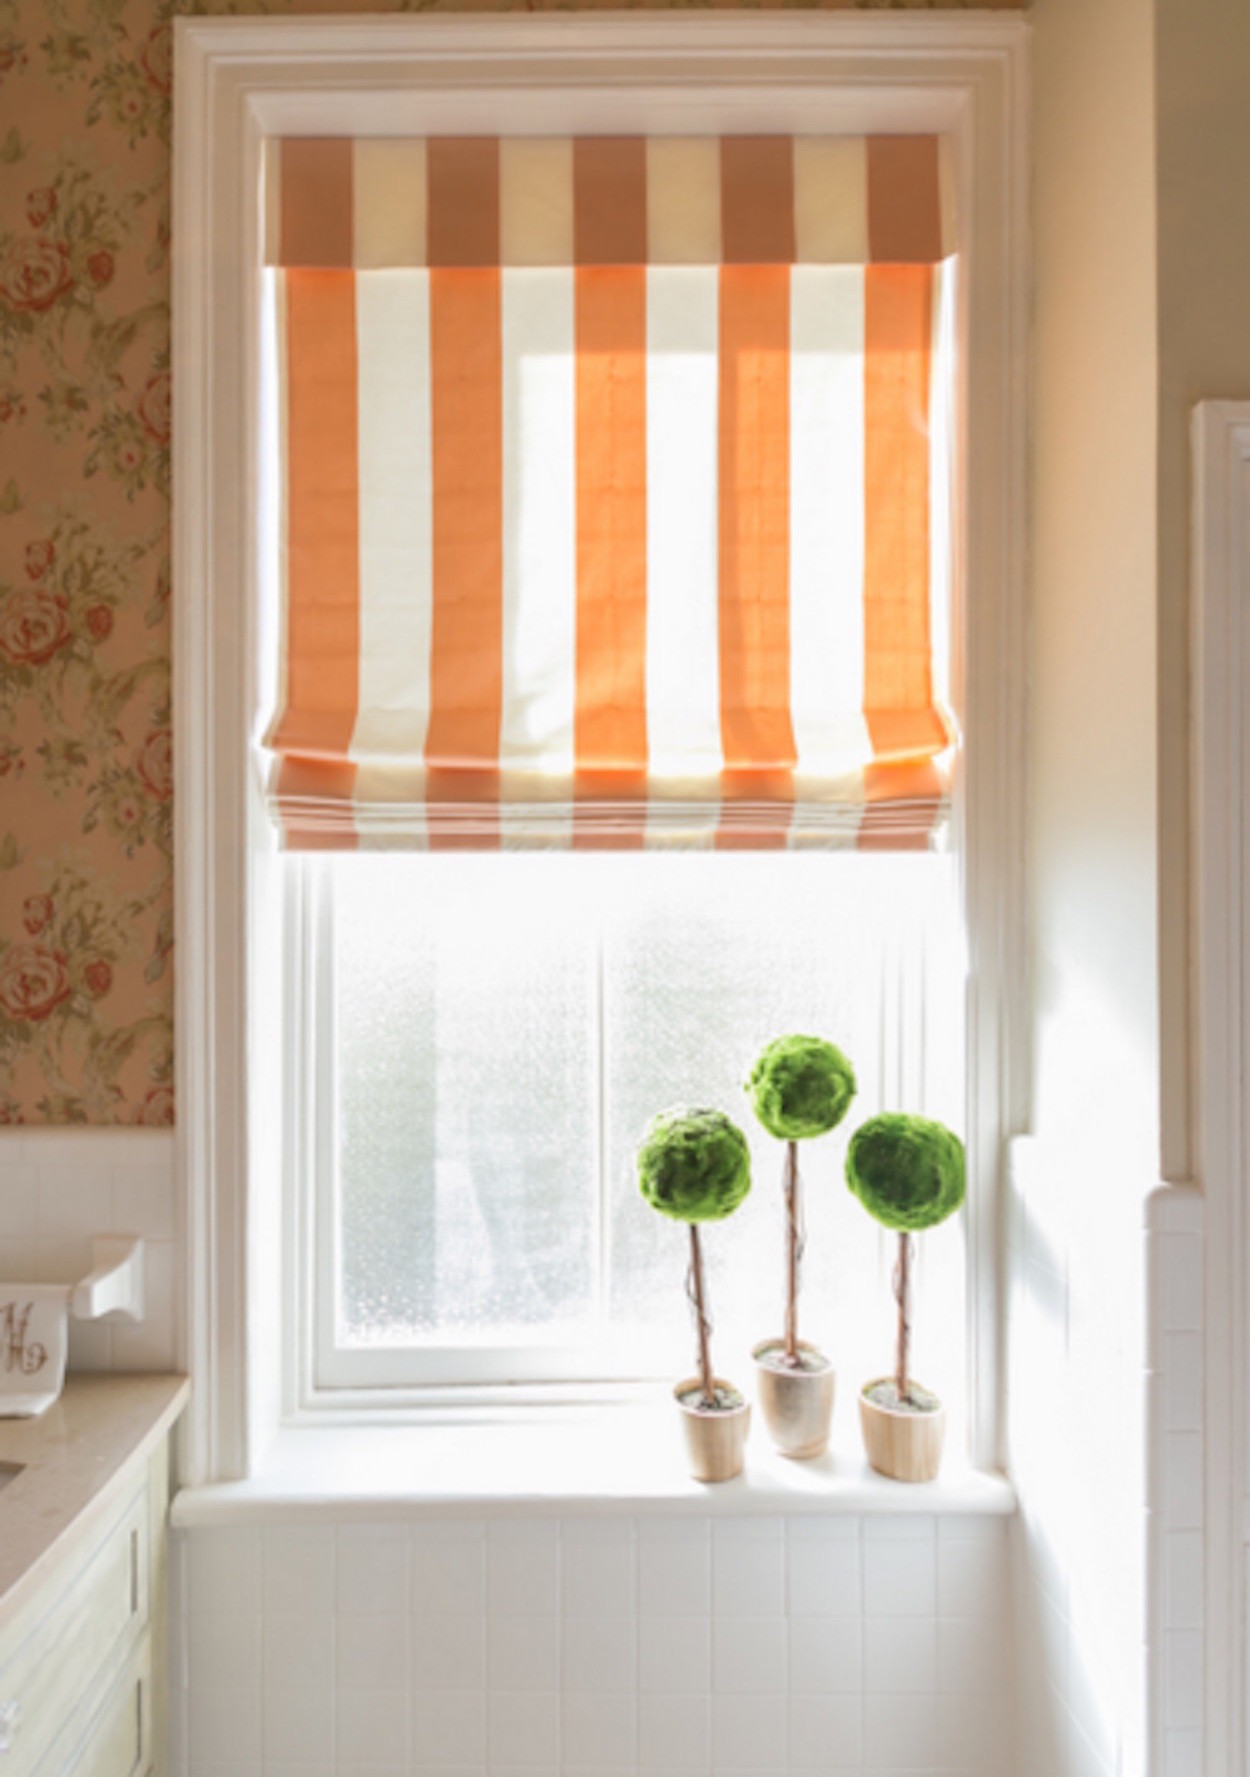 7 Diffe Bathroom Window Treatments You Might Not Have Thought Of Martha